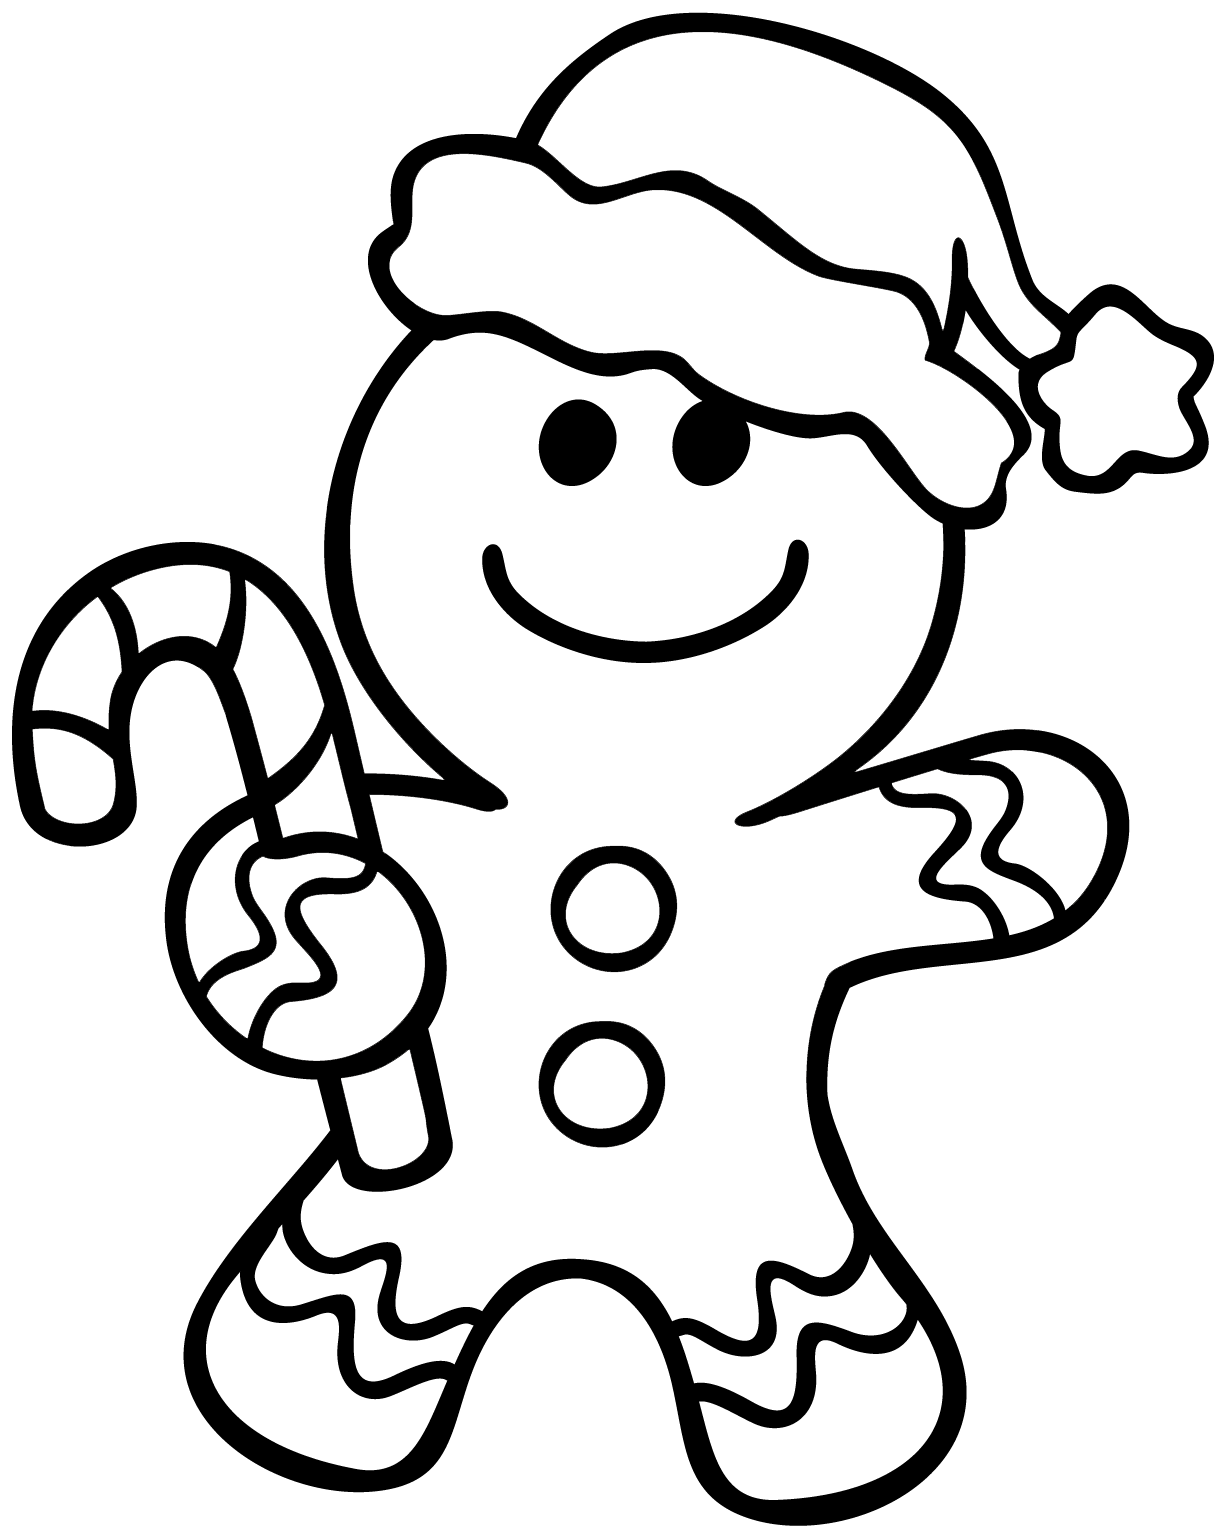 Gingerbread man coloring pages to download and print for free for Coloring pages man